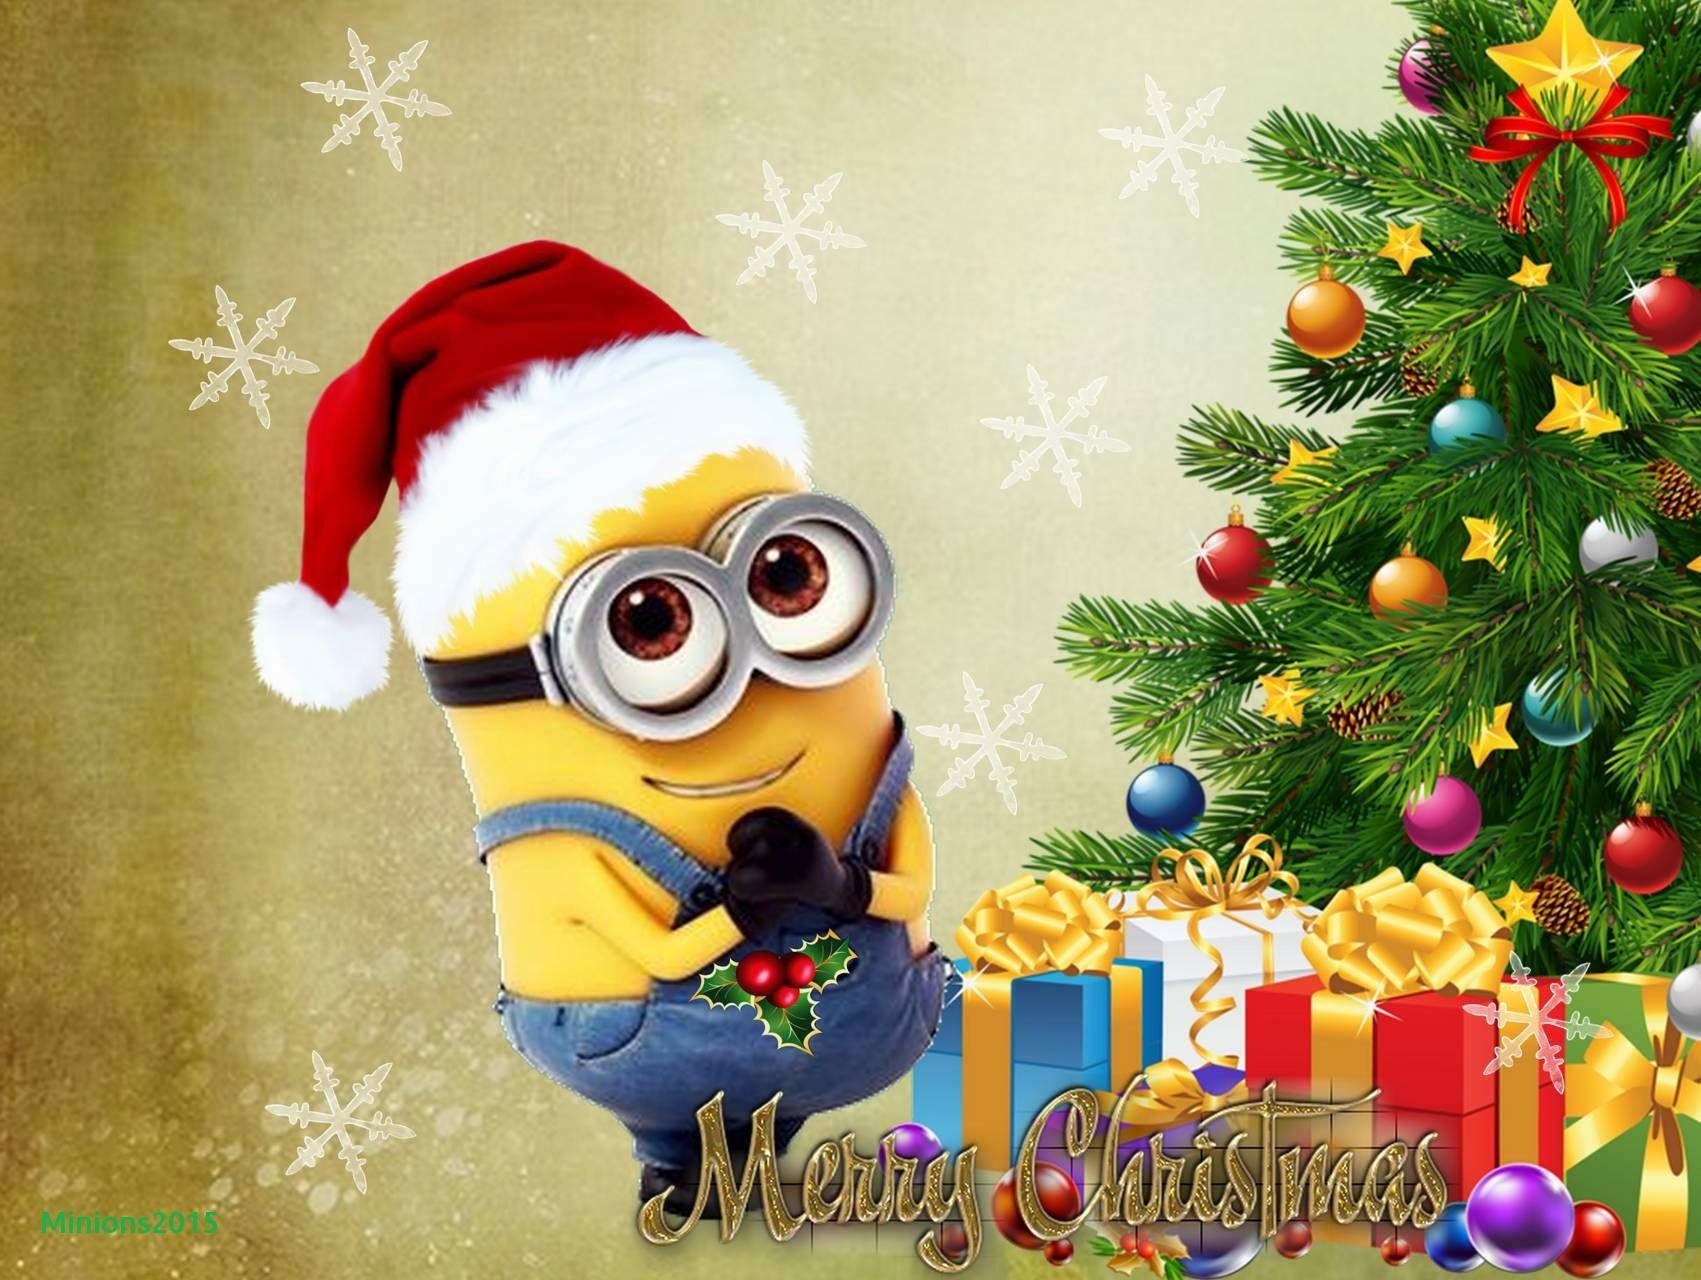 Funny Minion Merry Christmas Wallpapers Sayings: Minions Christmas Wallpapers